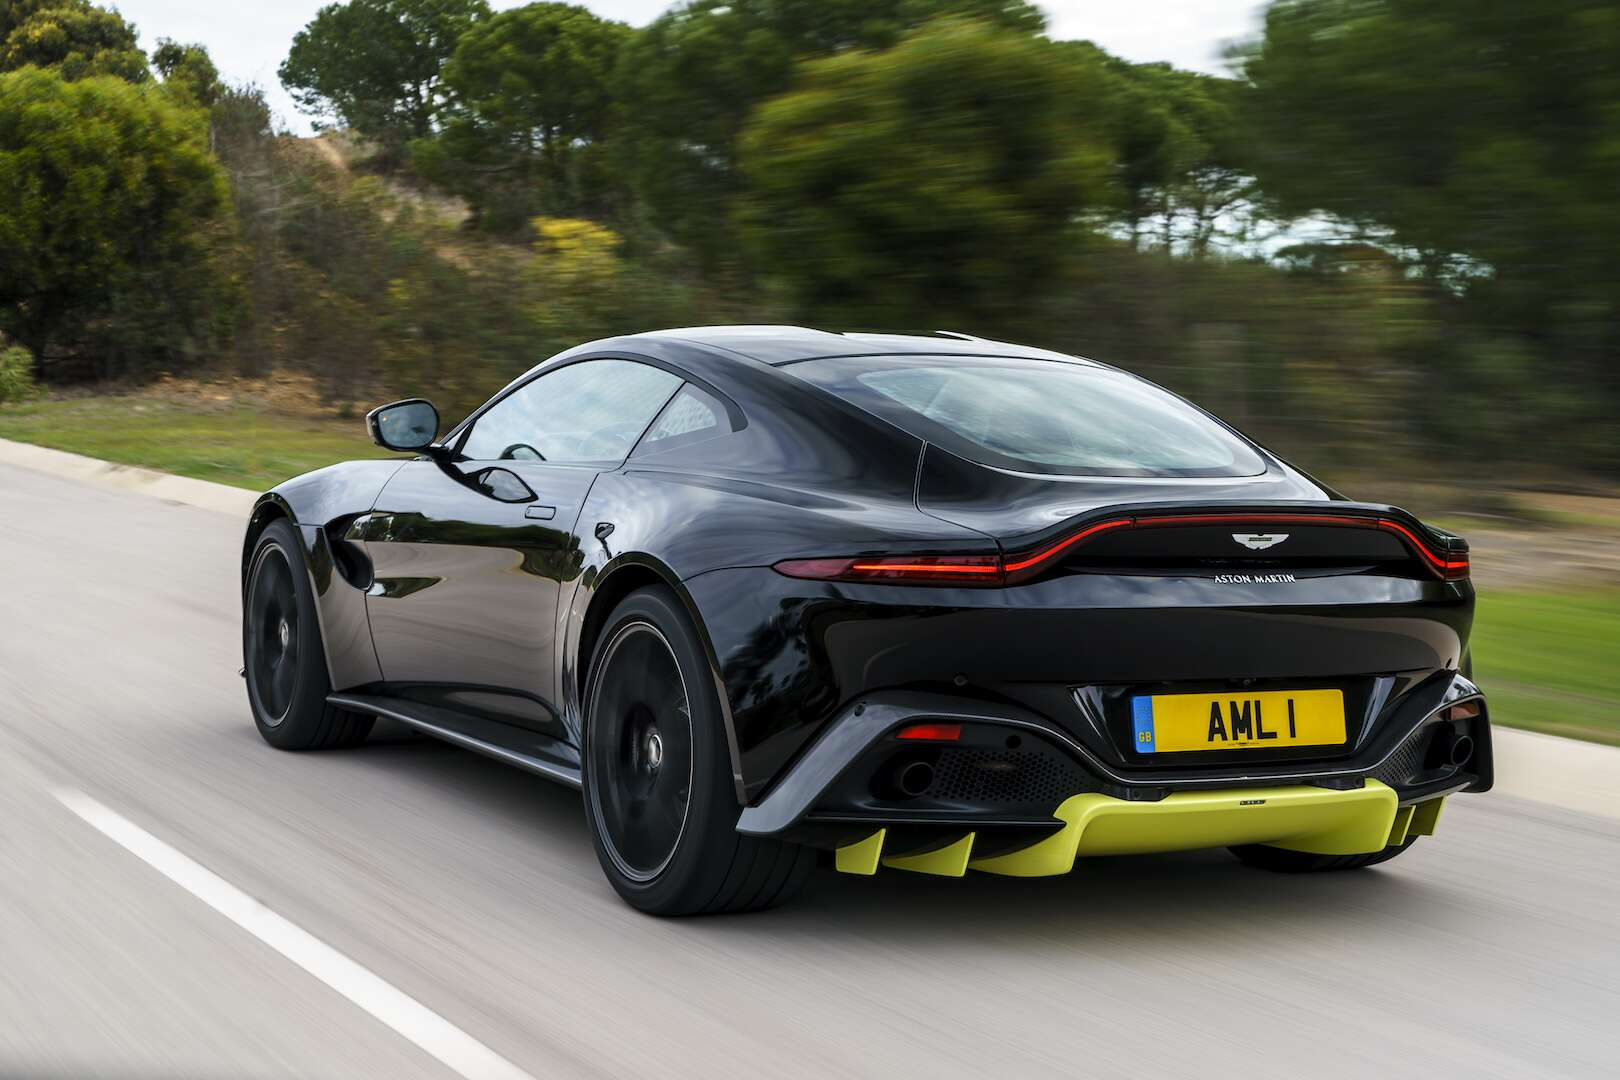 2019 aston martin vantage first drive review: this 195-mph predator